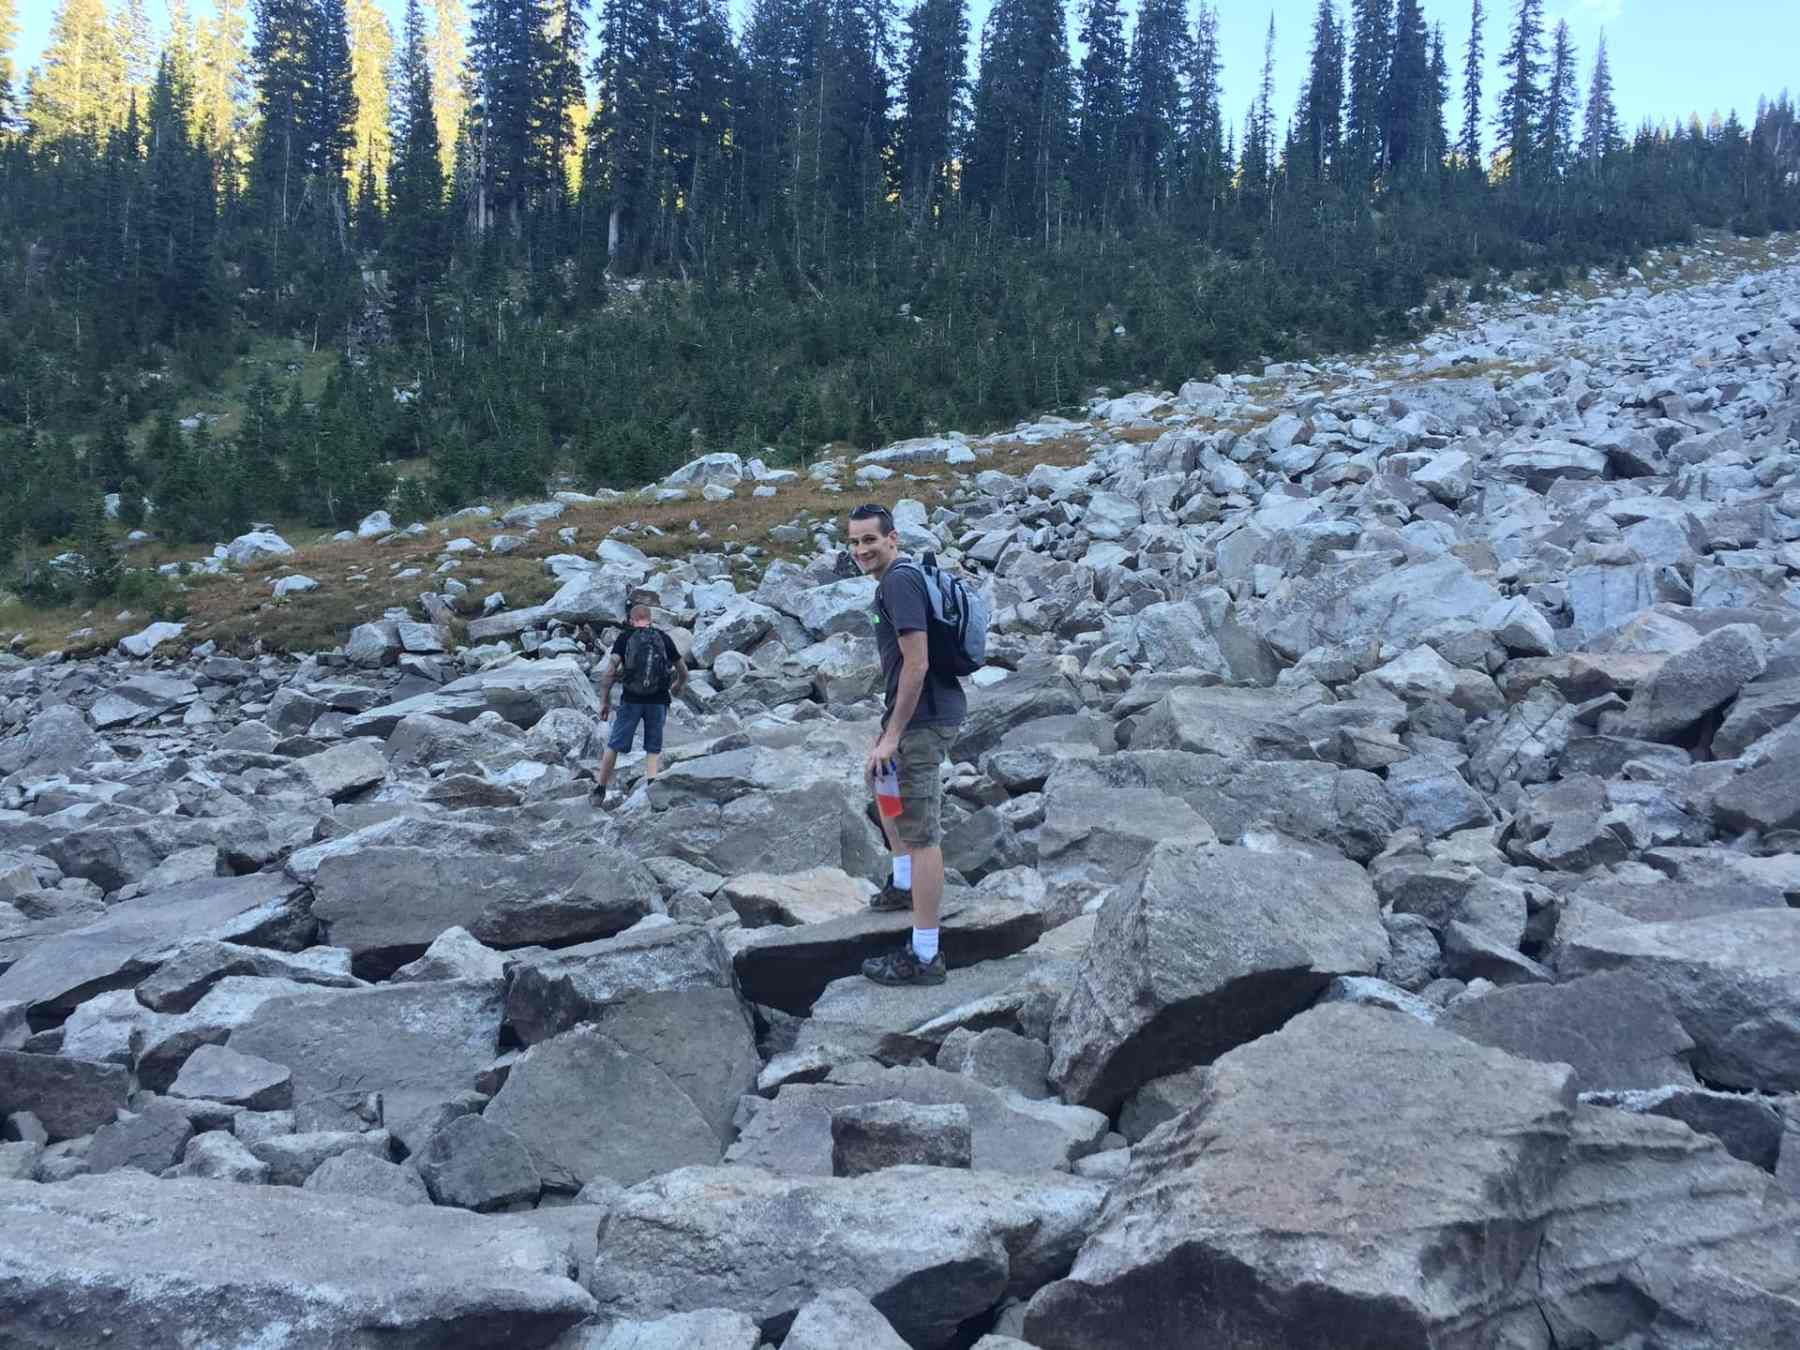 Keith and Randy crossing the boulder section